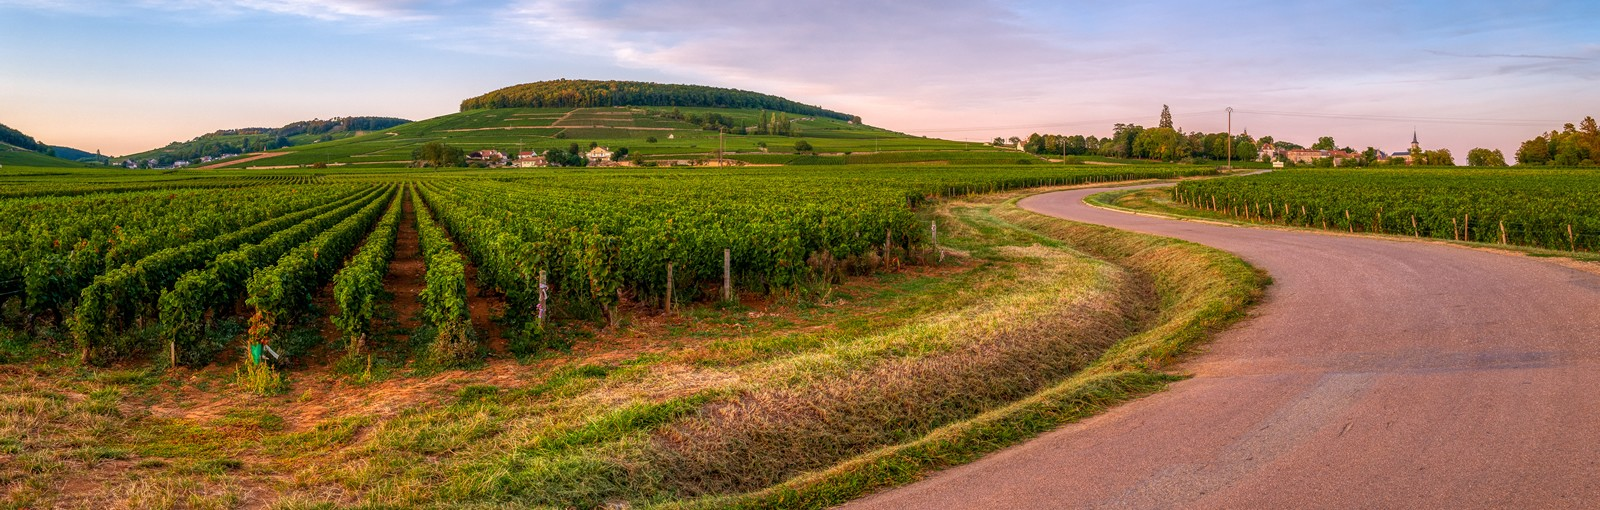 Tours 3 Nights in Burgundy: Sensations, Exploration, Castles and Wines! - Burgundy - Multiday tours from Paris